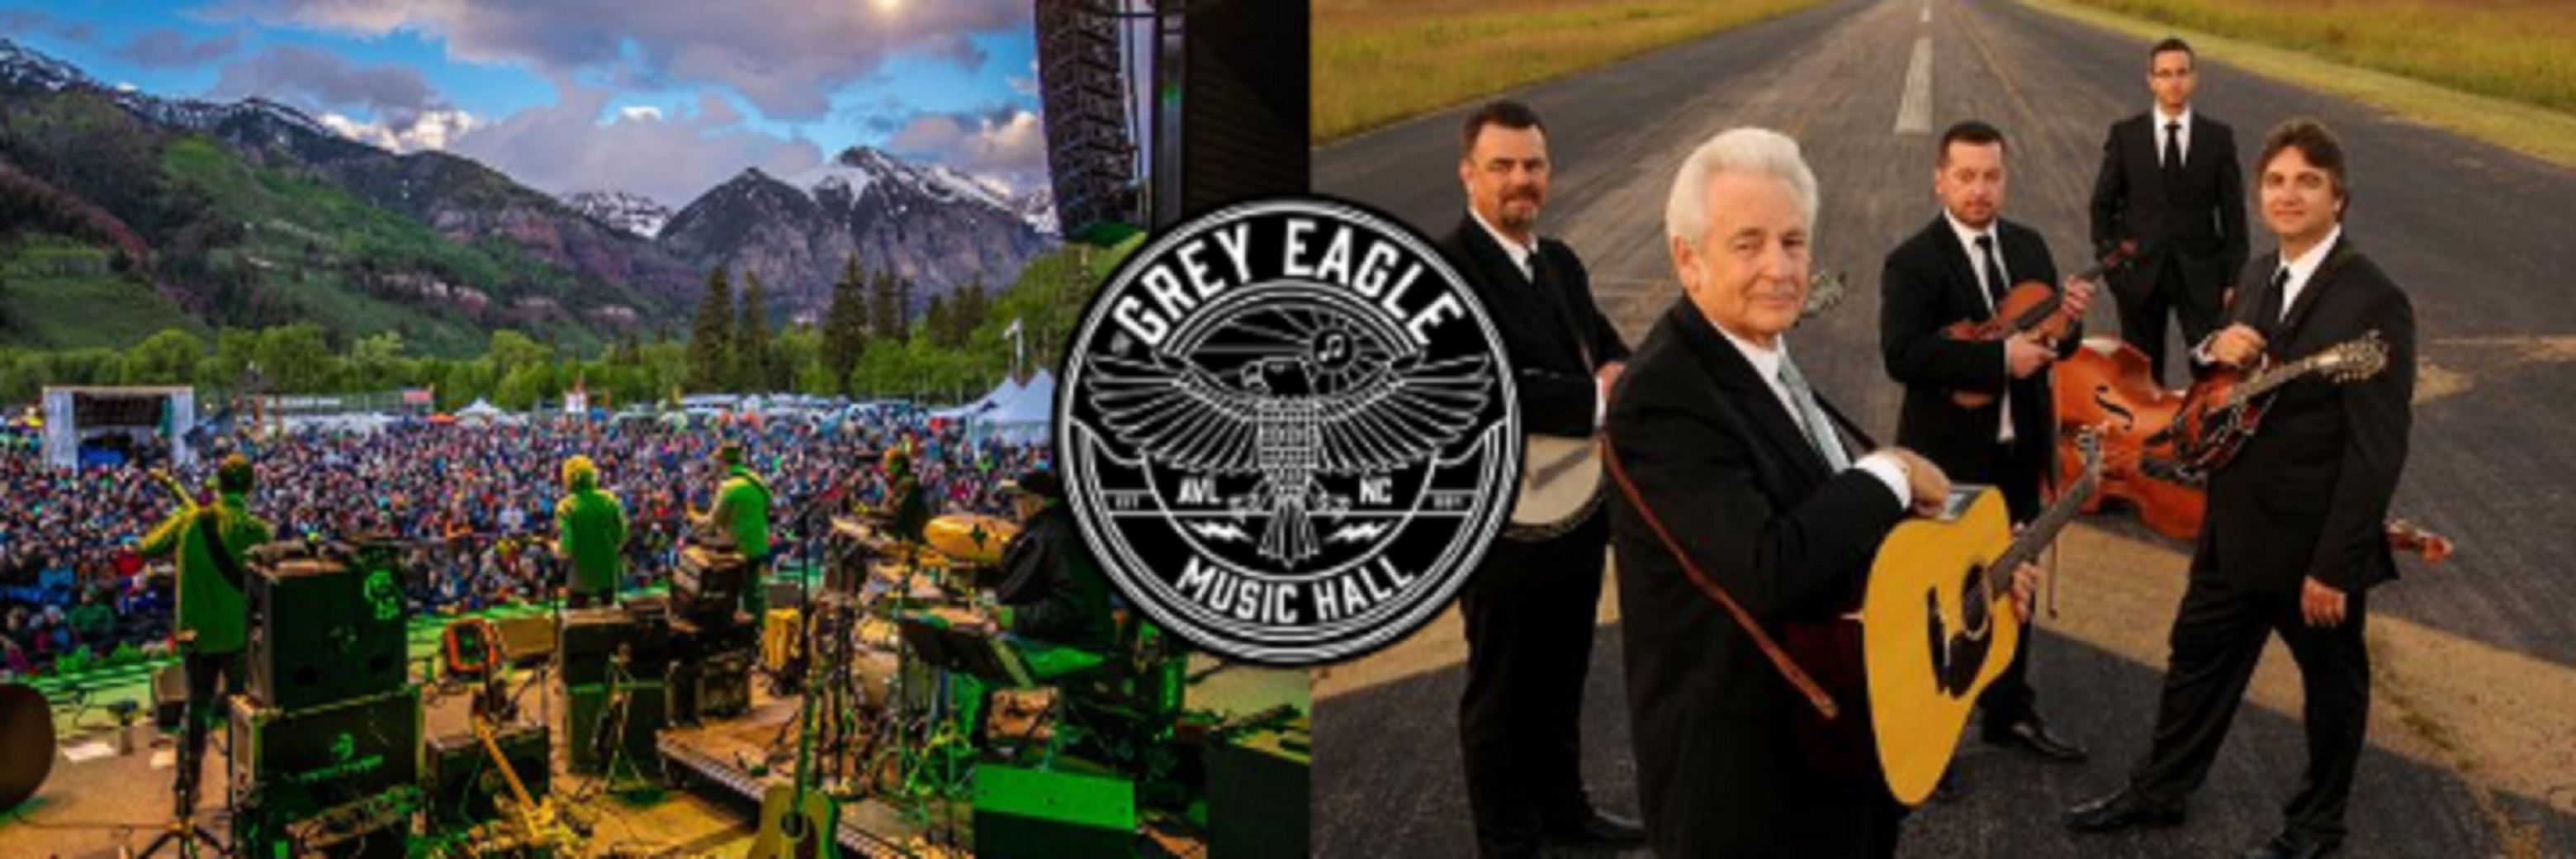 The Grey Eagle Announces Drive-In Shows Ft. SAM BUSH BAND and DEL MCCOURY BAND at Maggie Valley Fairgrounds